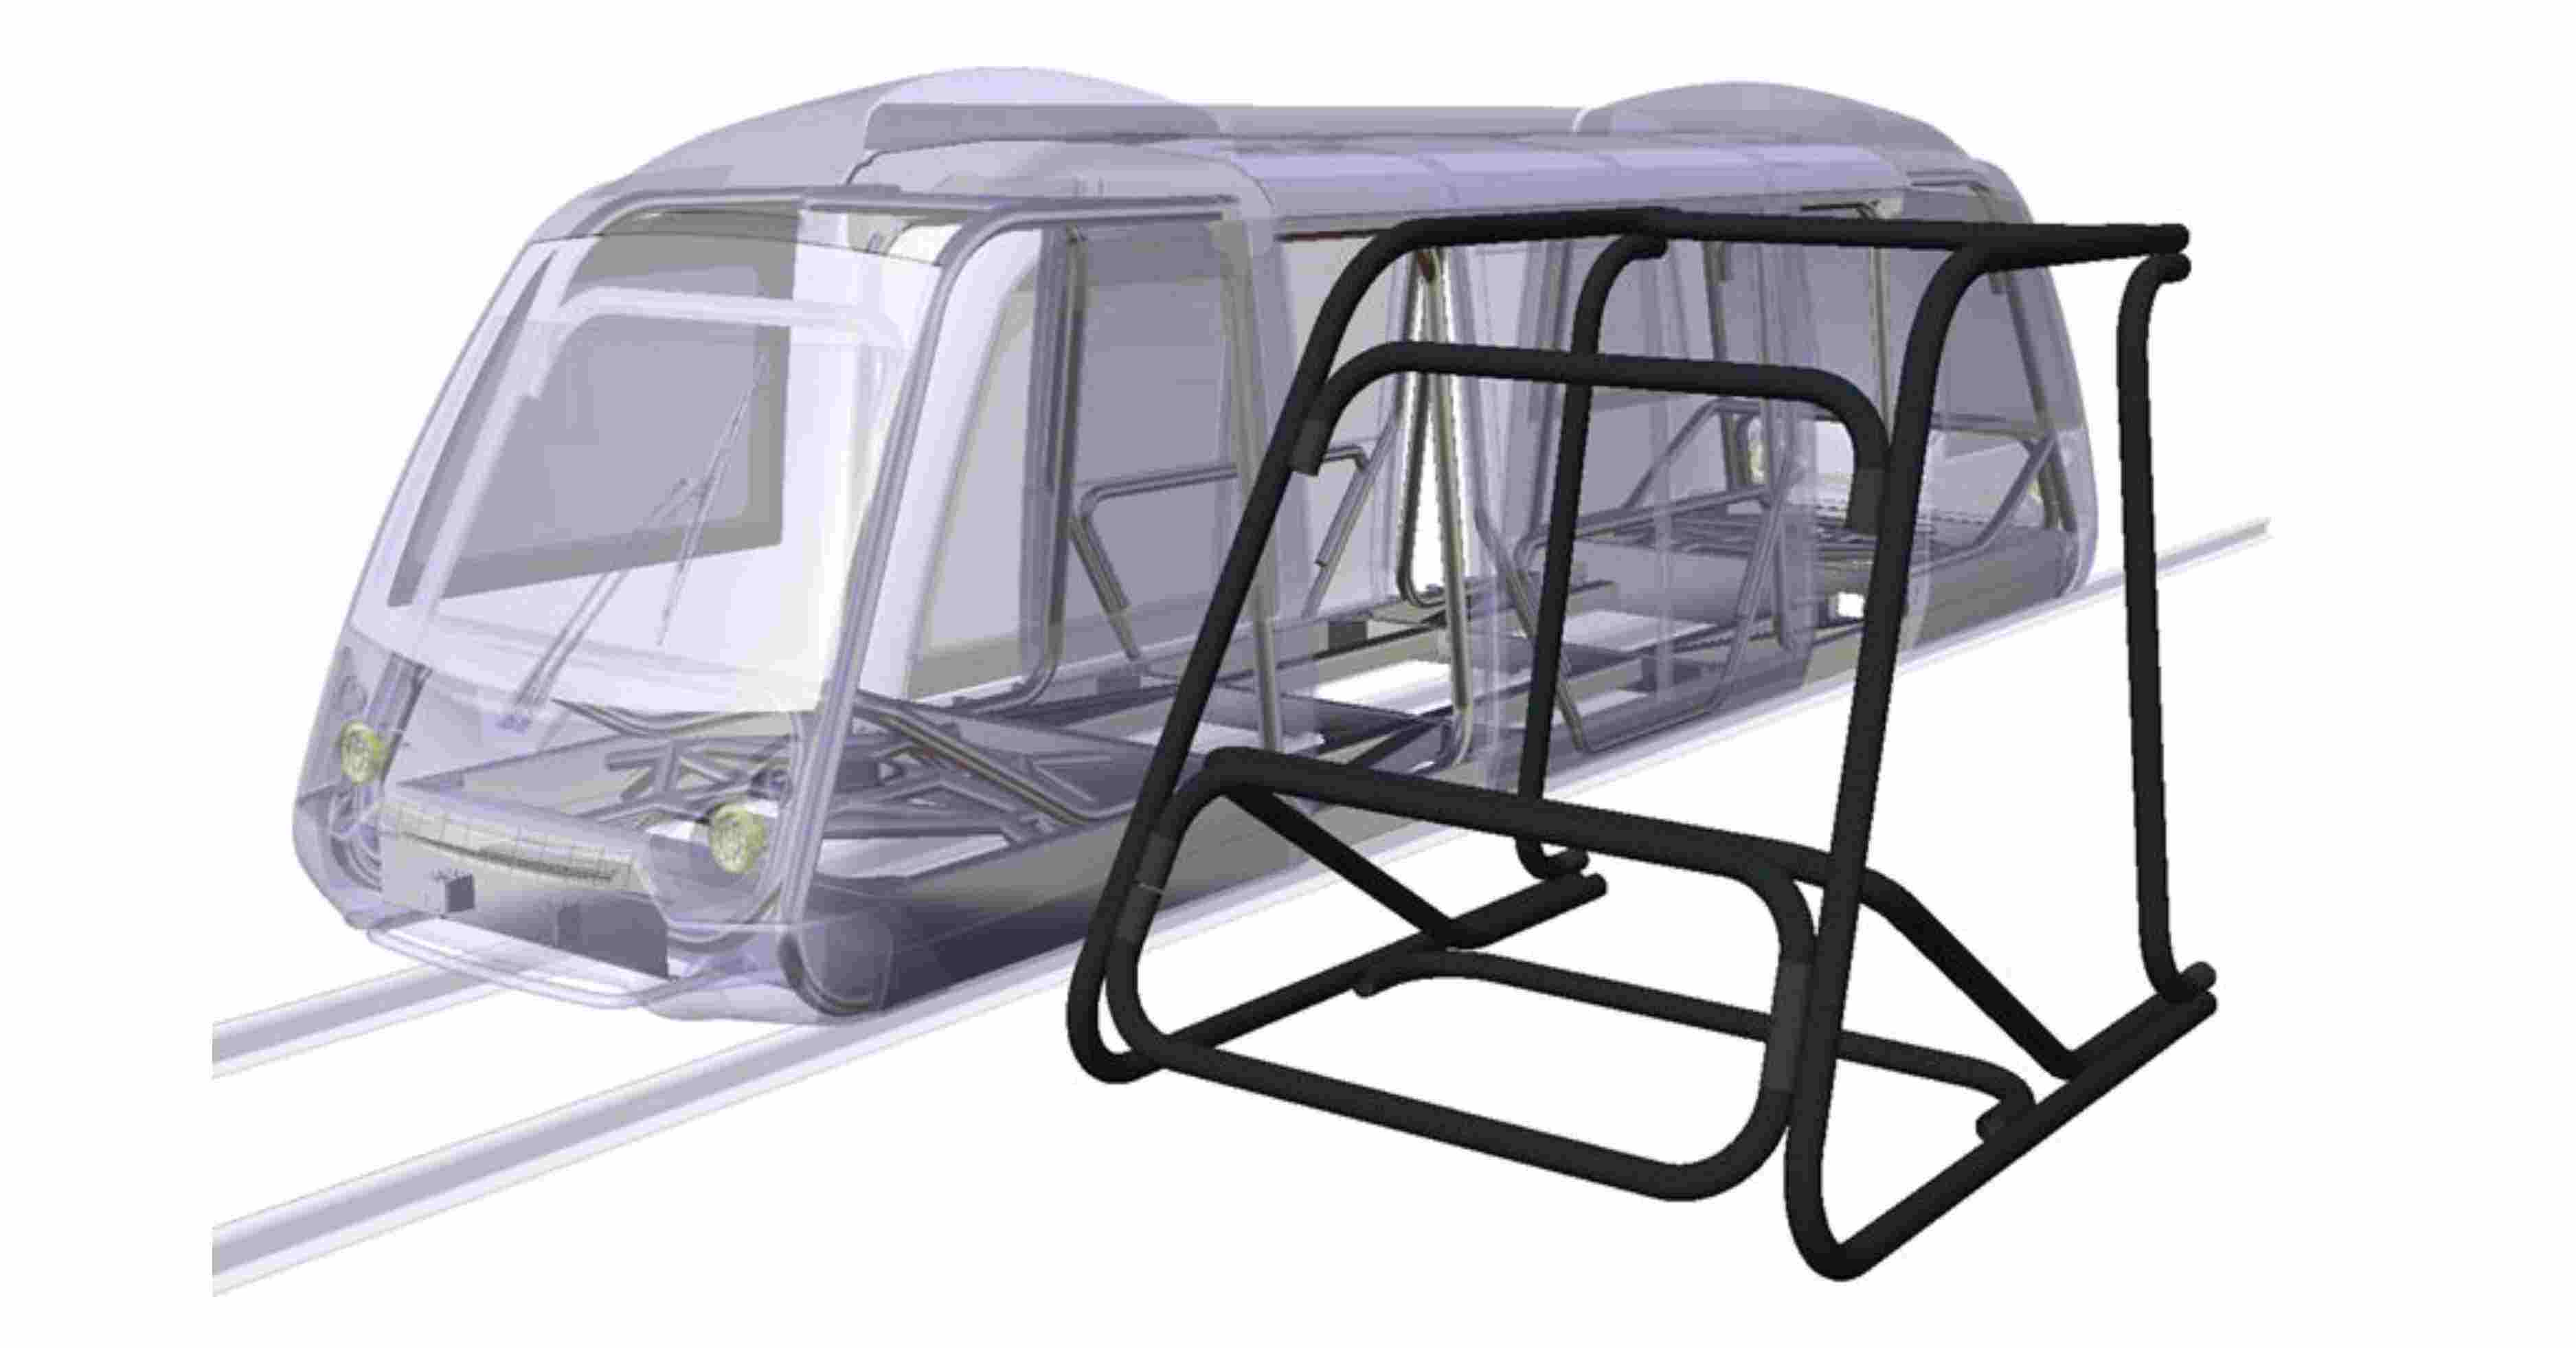 WMG Prototypes Braided Composite Frame for Very Light Rail (VLR) Demonstration Vehicle